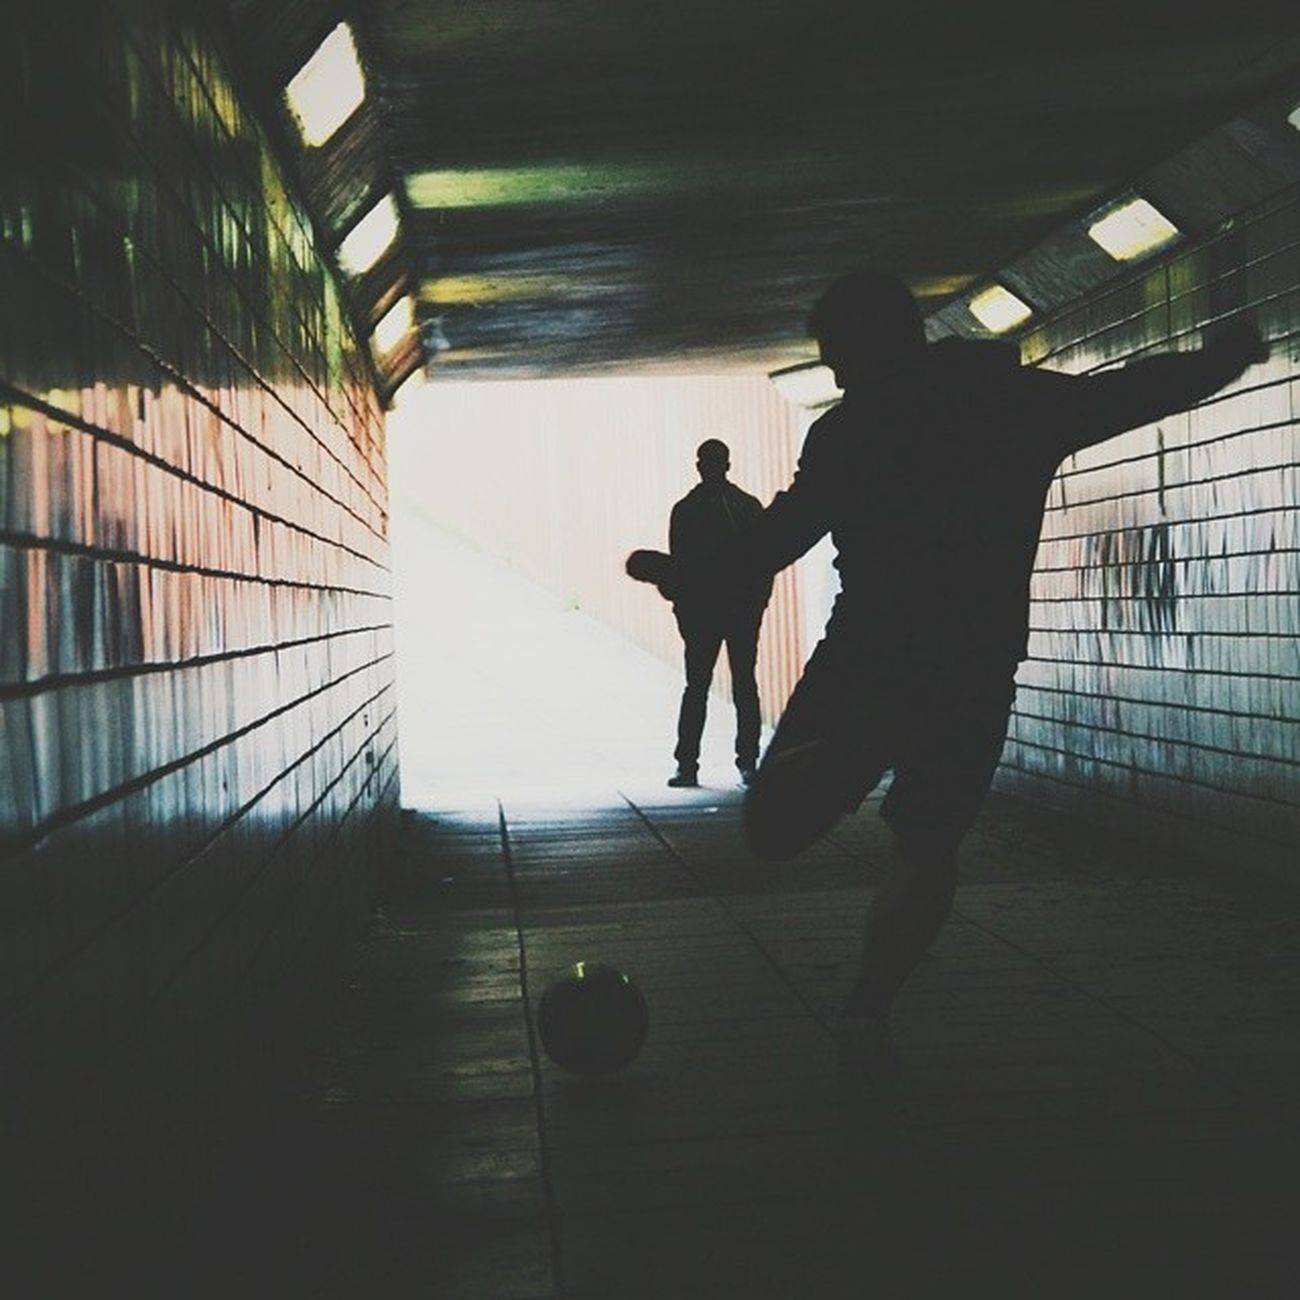 Have this.......... =================================== ST Marys Subway Southampton Hampshire UK ================================ 4 of 10 Series 1 LumiaXNatGeo Soccer Photography ===================================